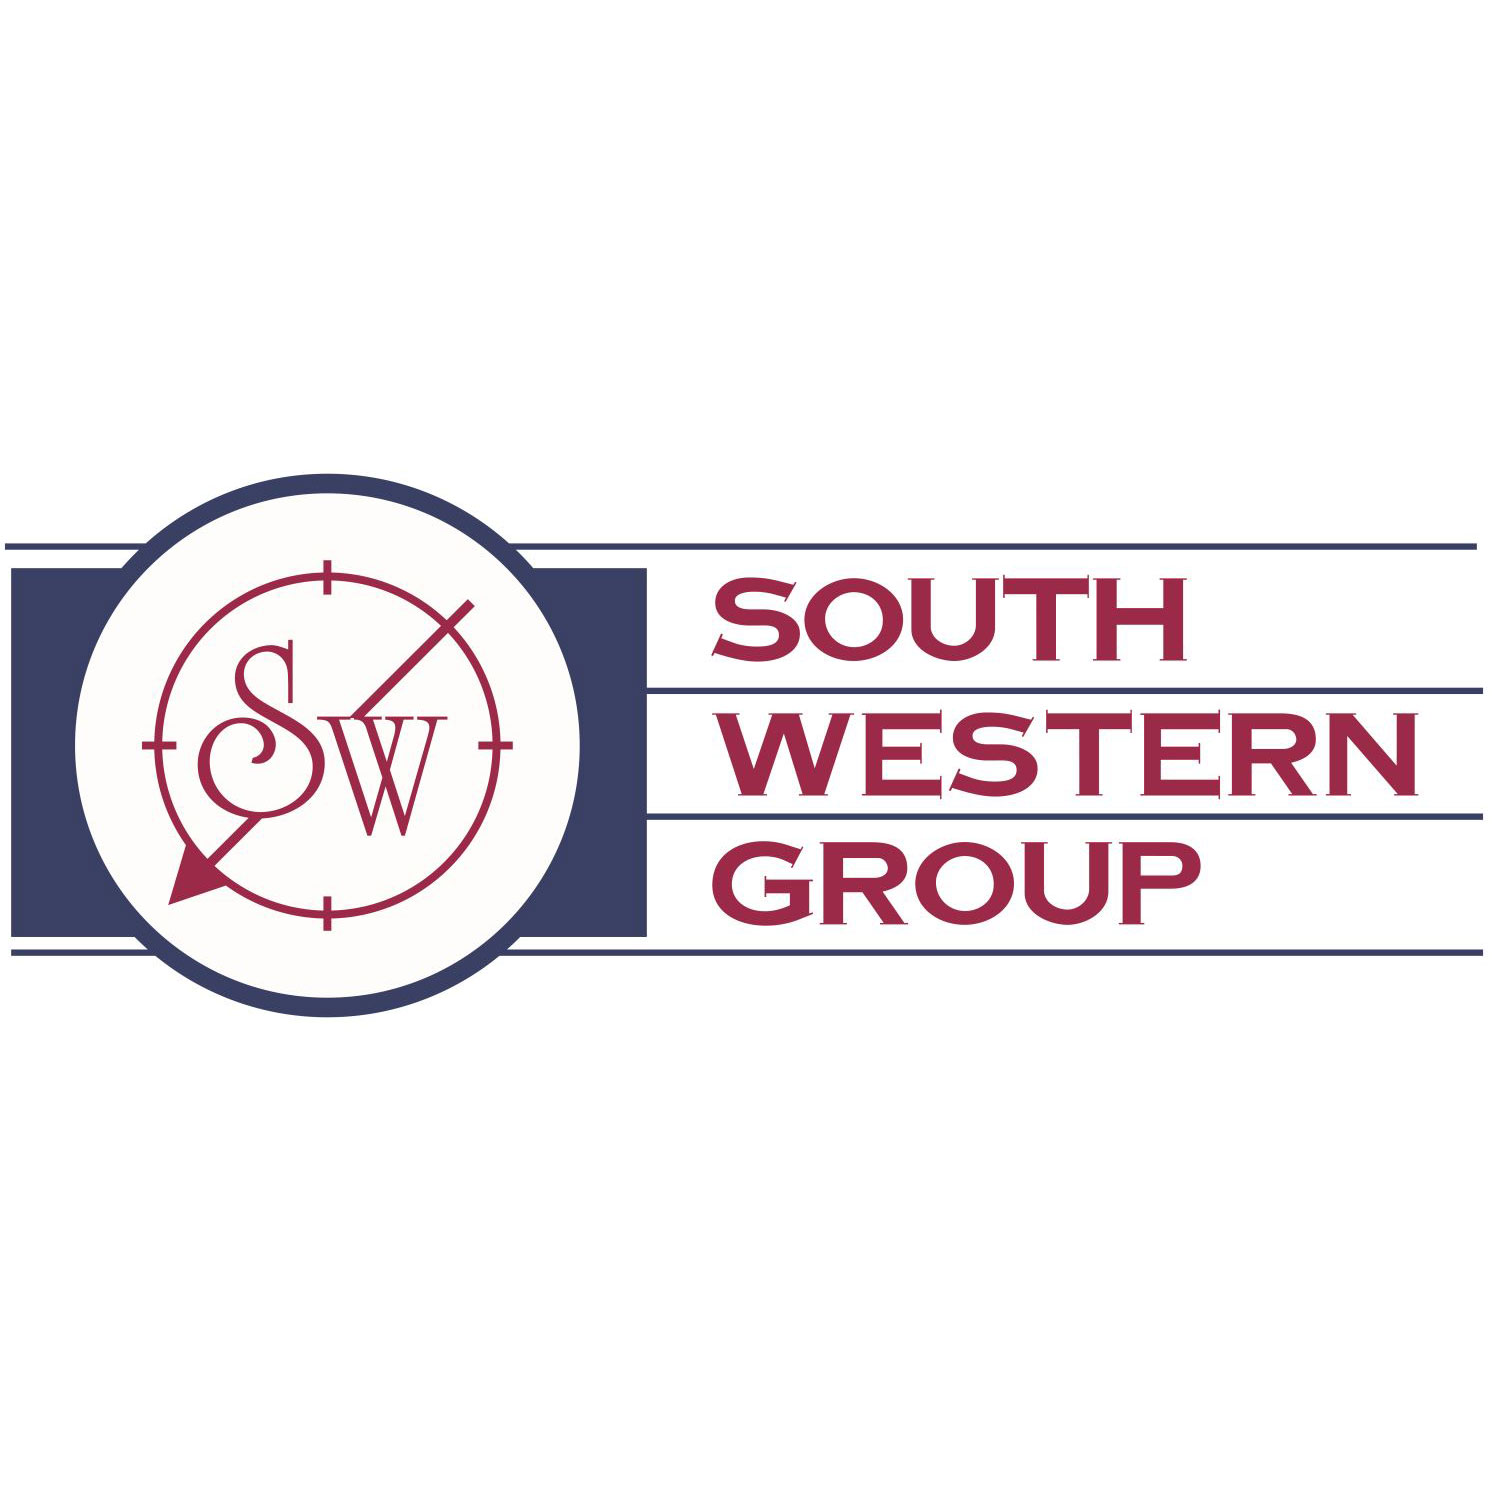 South Western Group Logo - Jeffery & Spence